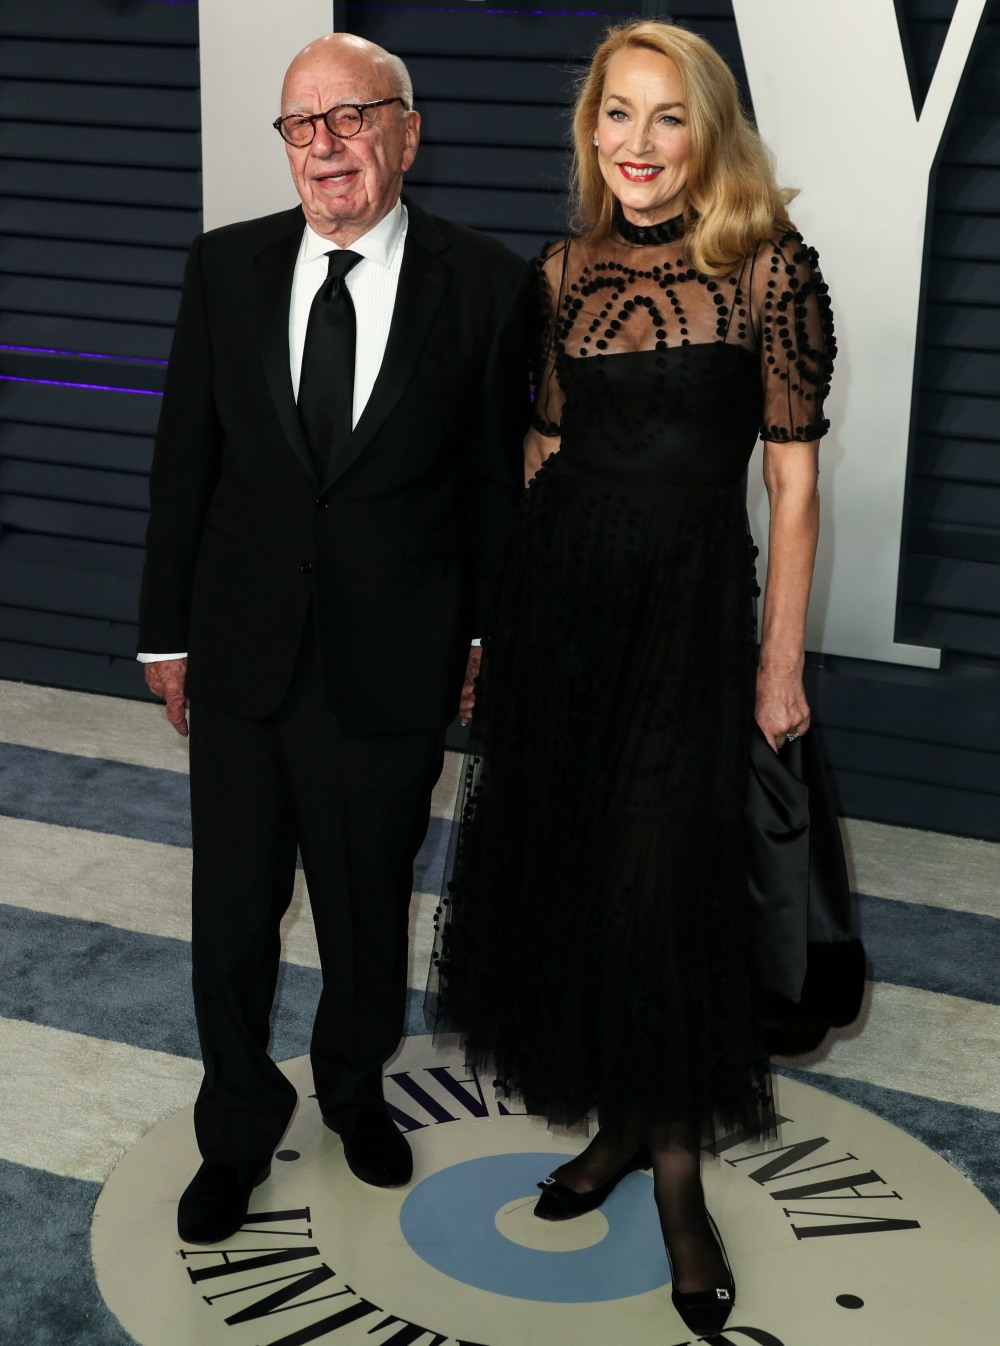 Rupert Murdoch and wife Jerry Hall arrive at the 2019 Vanity Fair Oscar Party held at the Wallis Annenberg Center for the Performing Arts on February 24, 2019 in Beverly Hills, Los Angeles, California, United States. (Photo by Xavier Collin/Image Press Ag